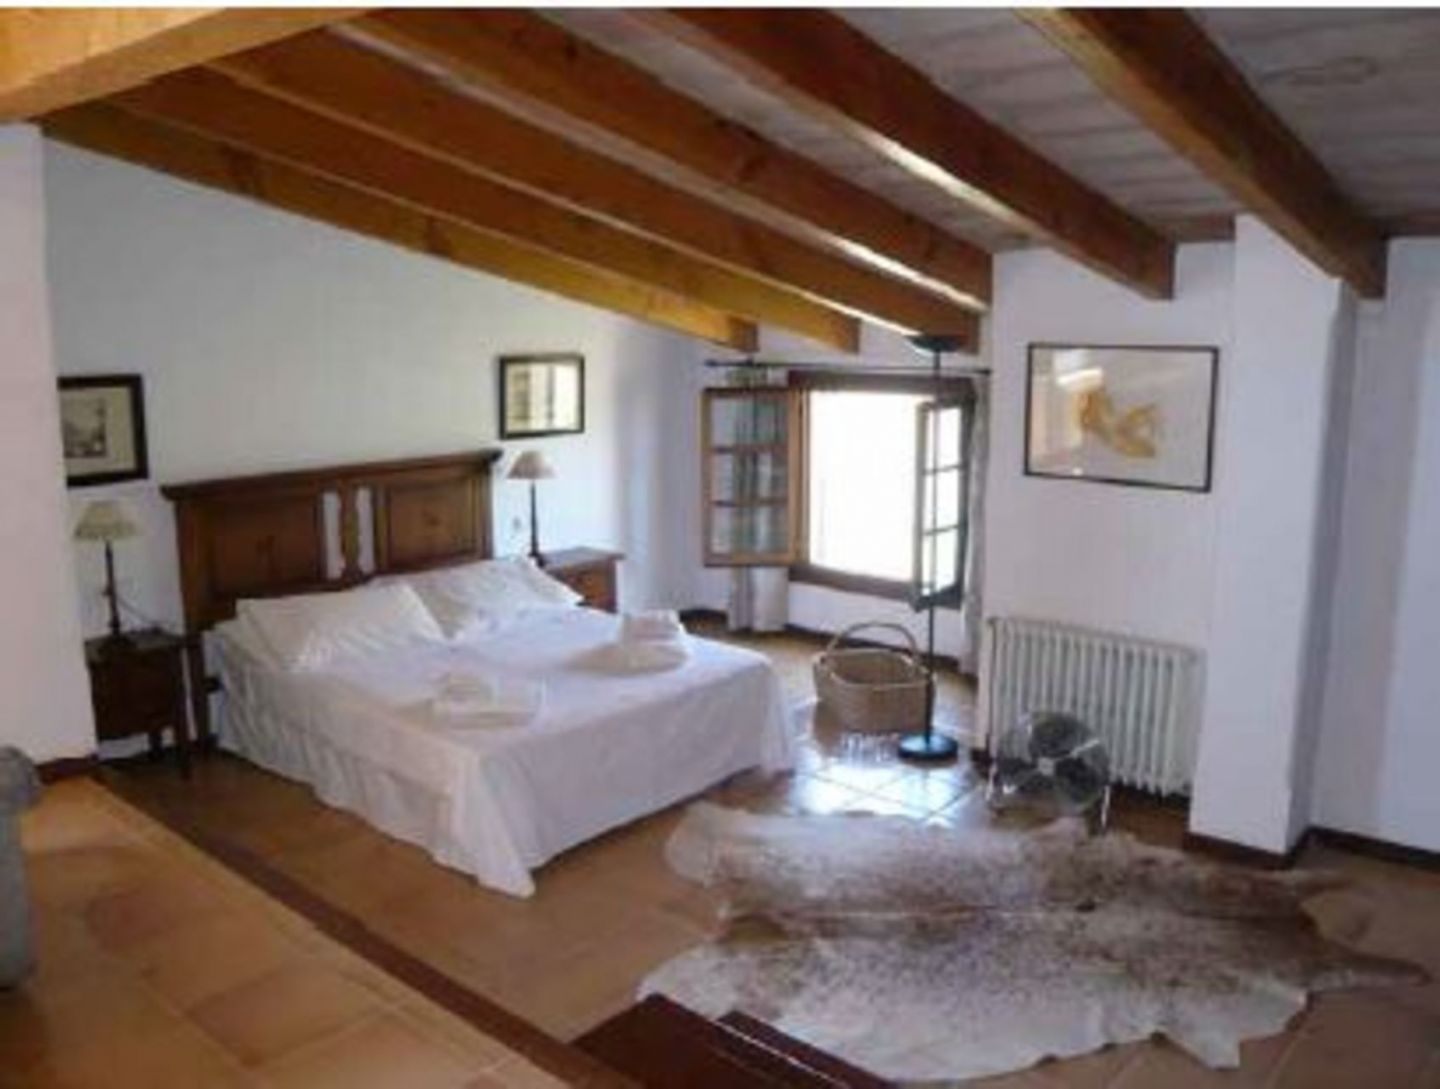 4 Bed Countryside House for sale in POLLENSA 6